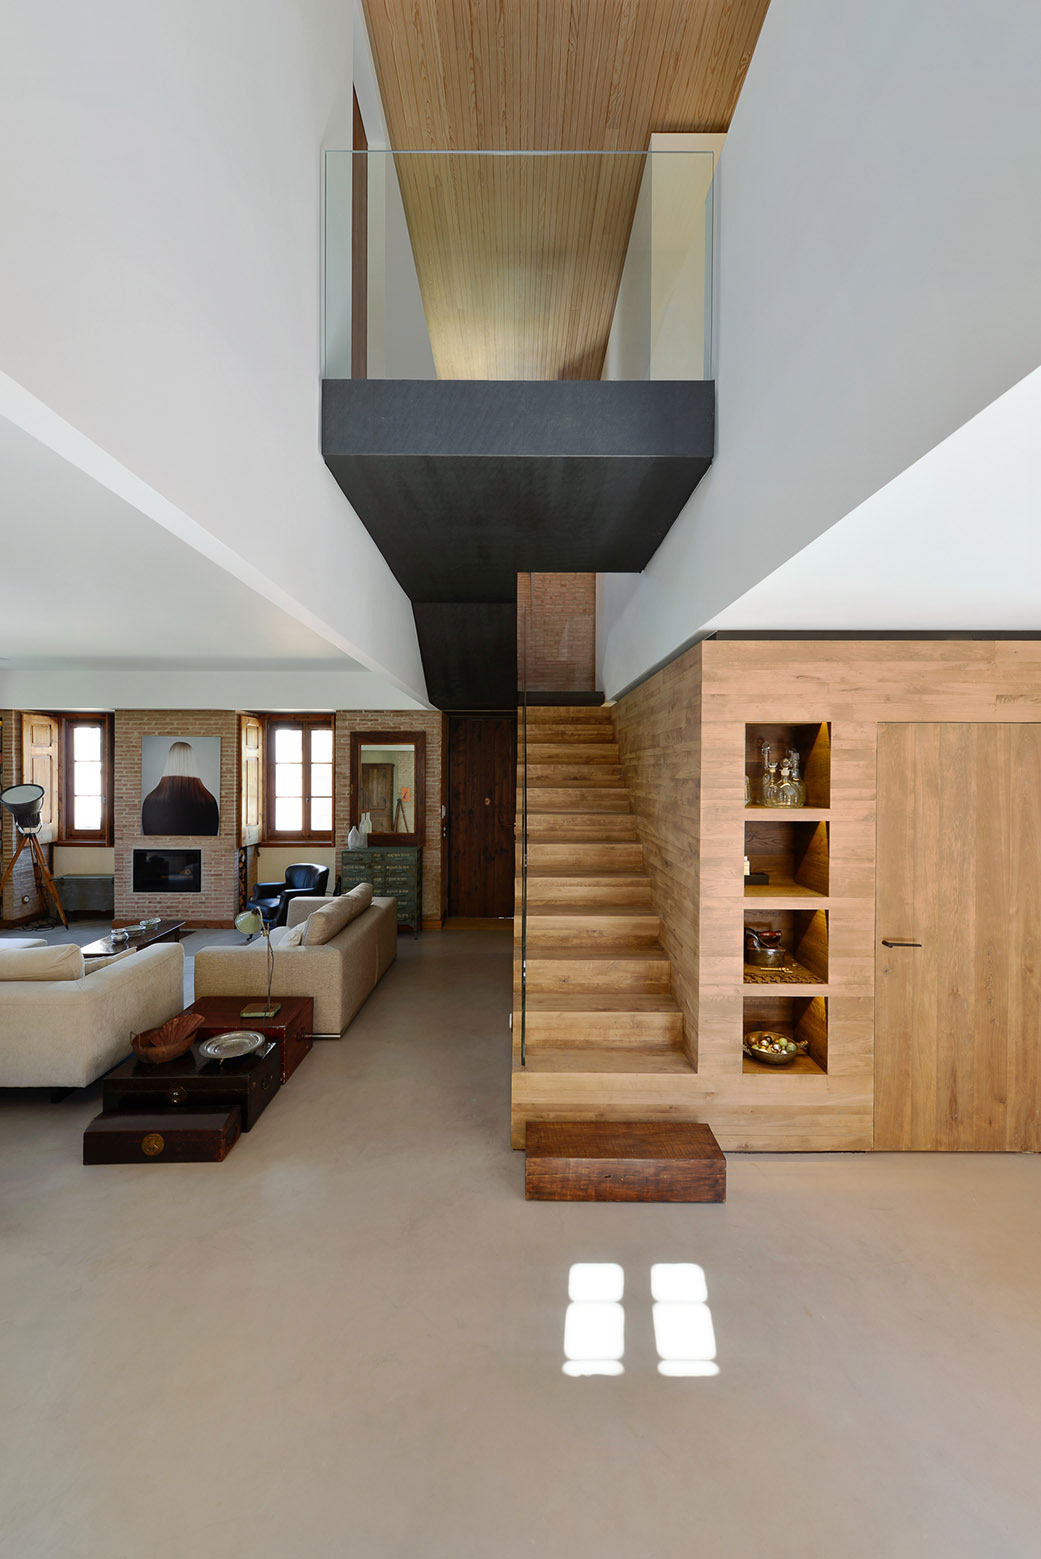 Renovation of a 1923 House in Estoril by Ricardo Moreno Arquitectos-21